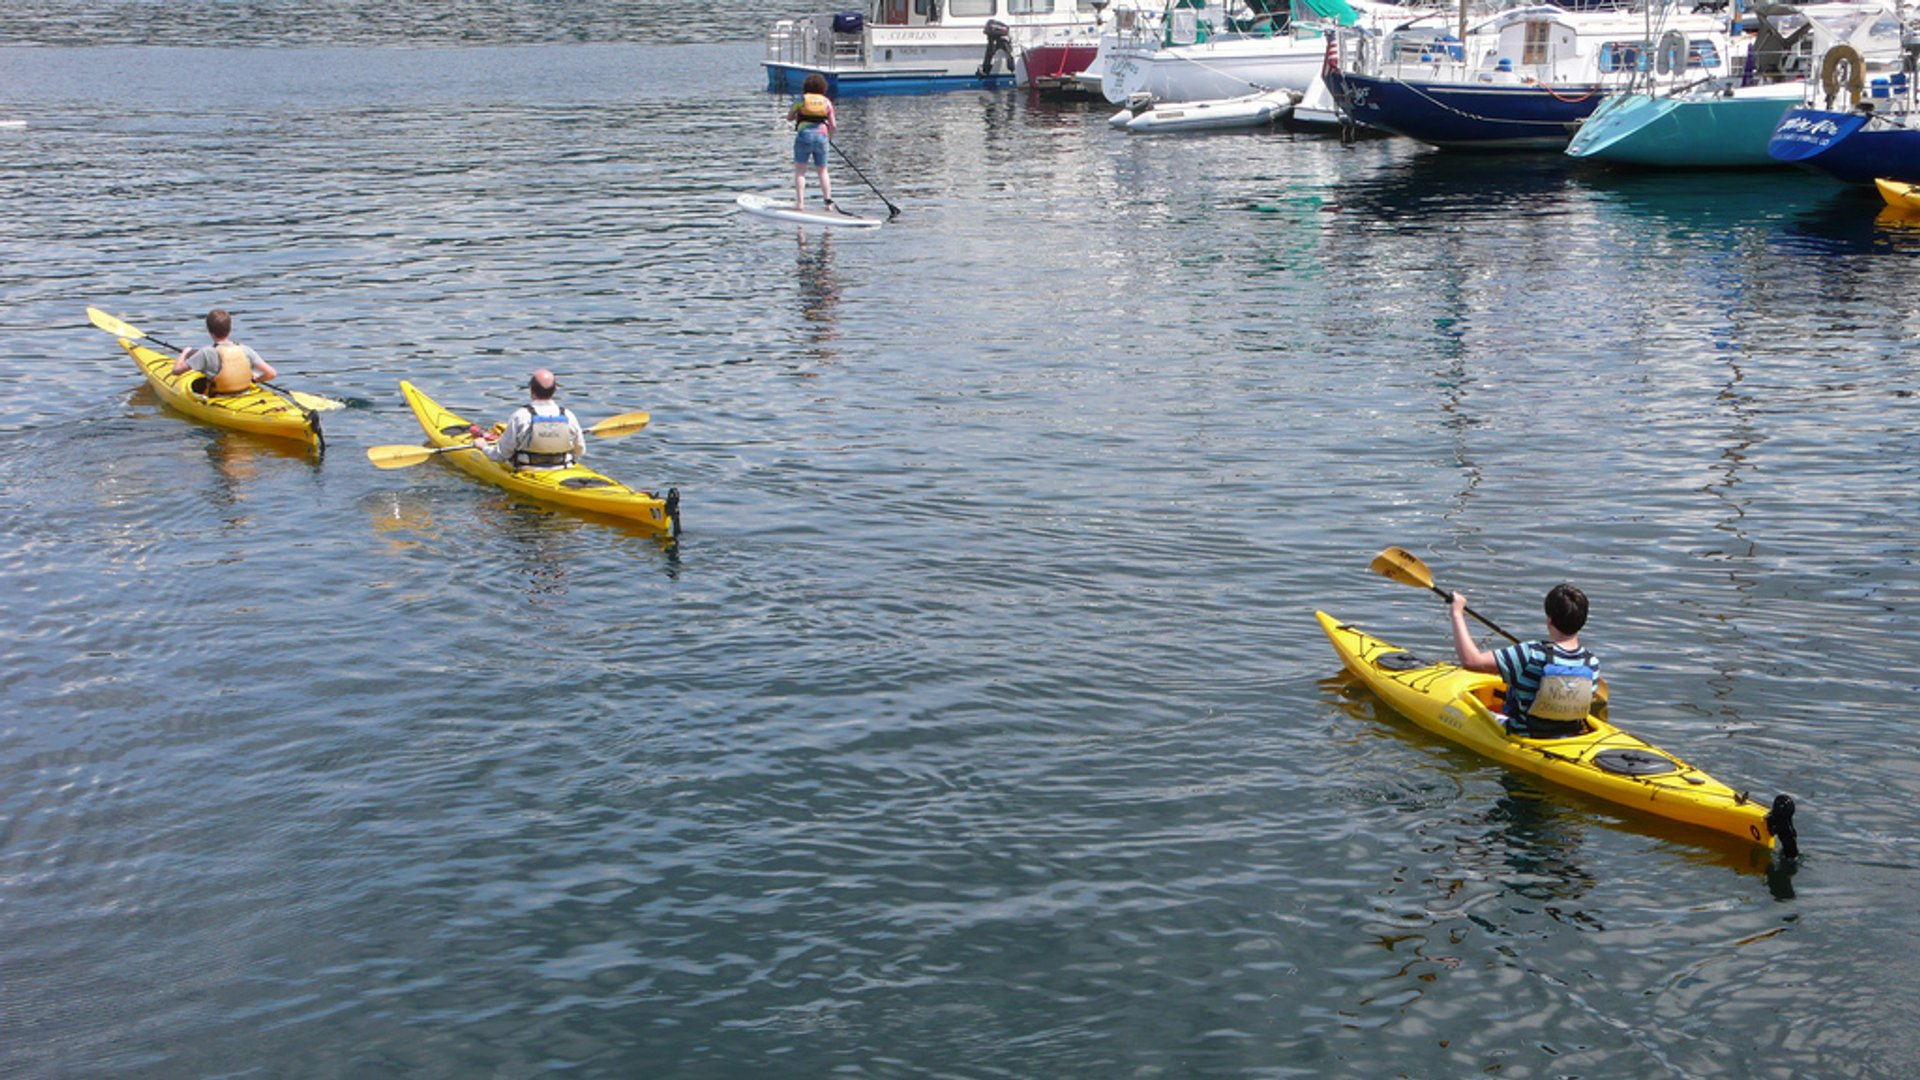 Kayaking on Lake Union from the Northwest Outdoor Center 2020